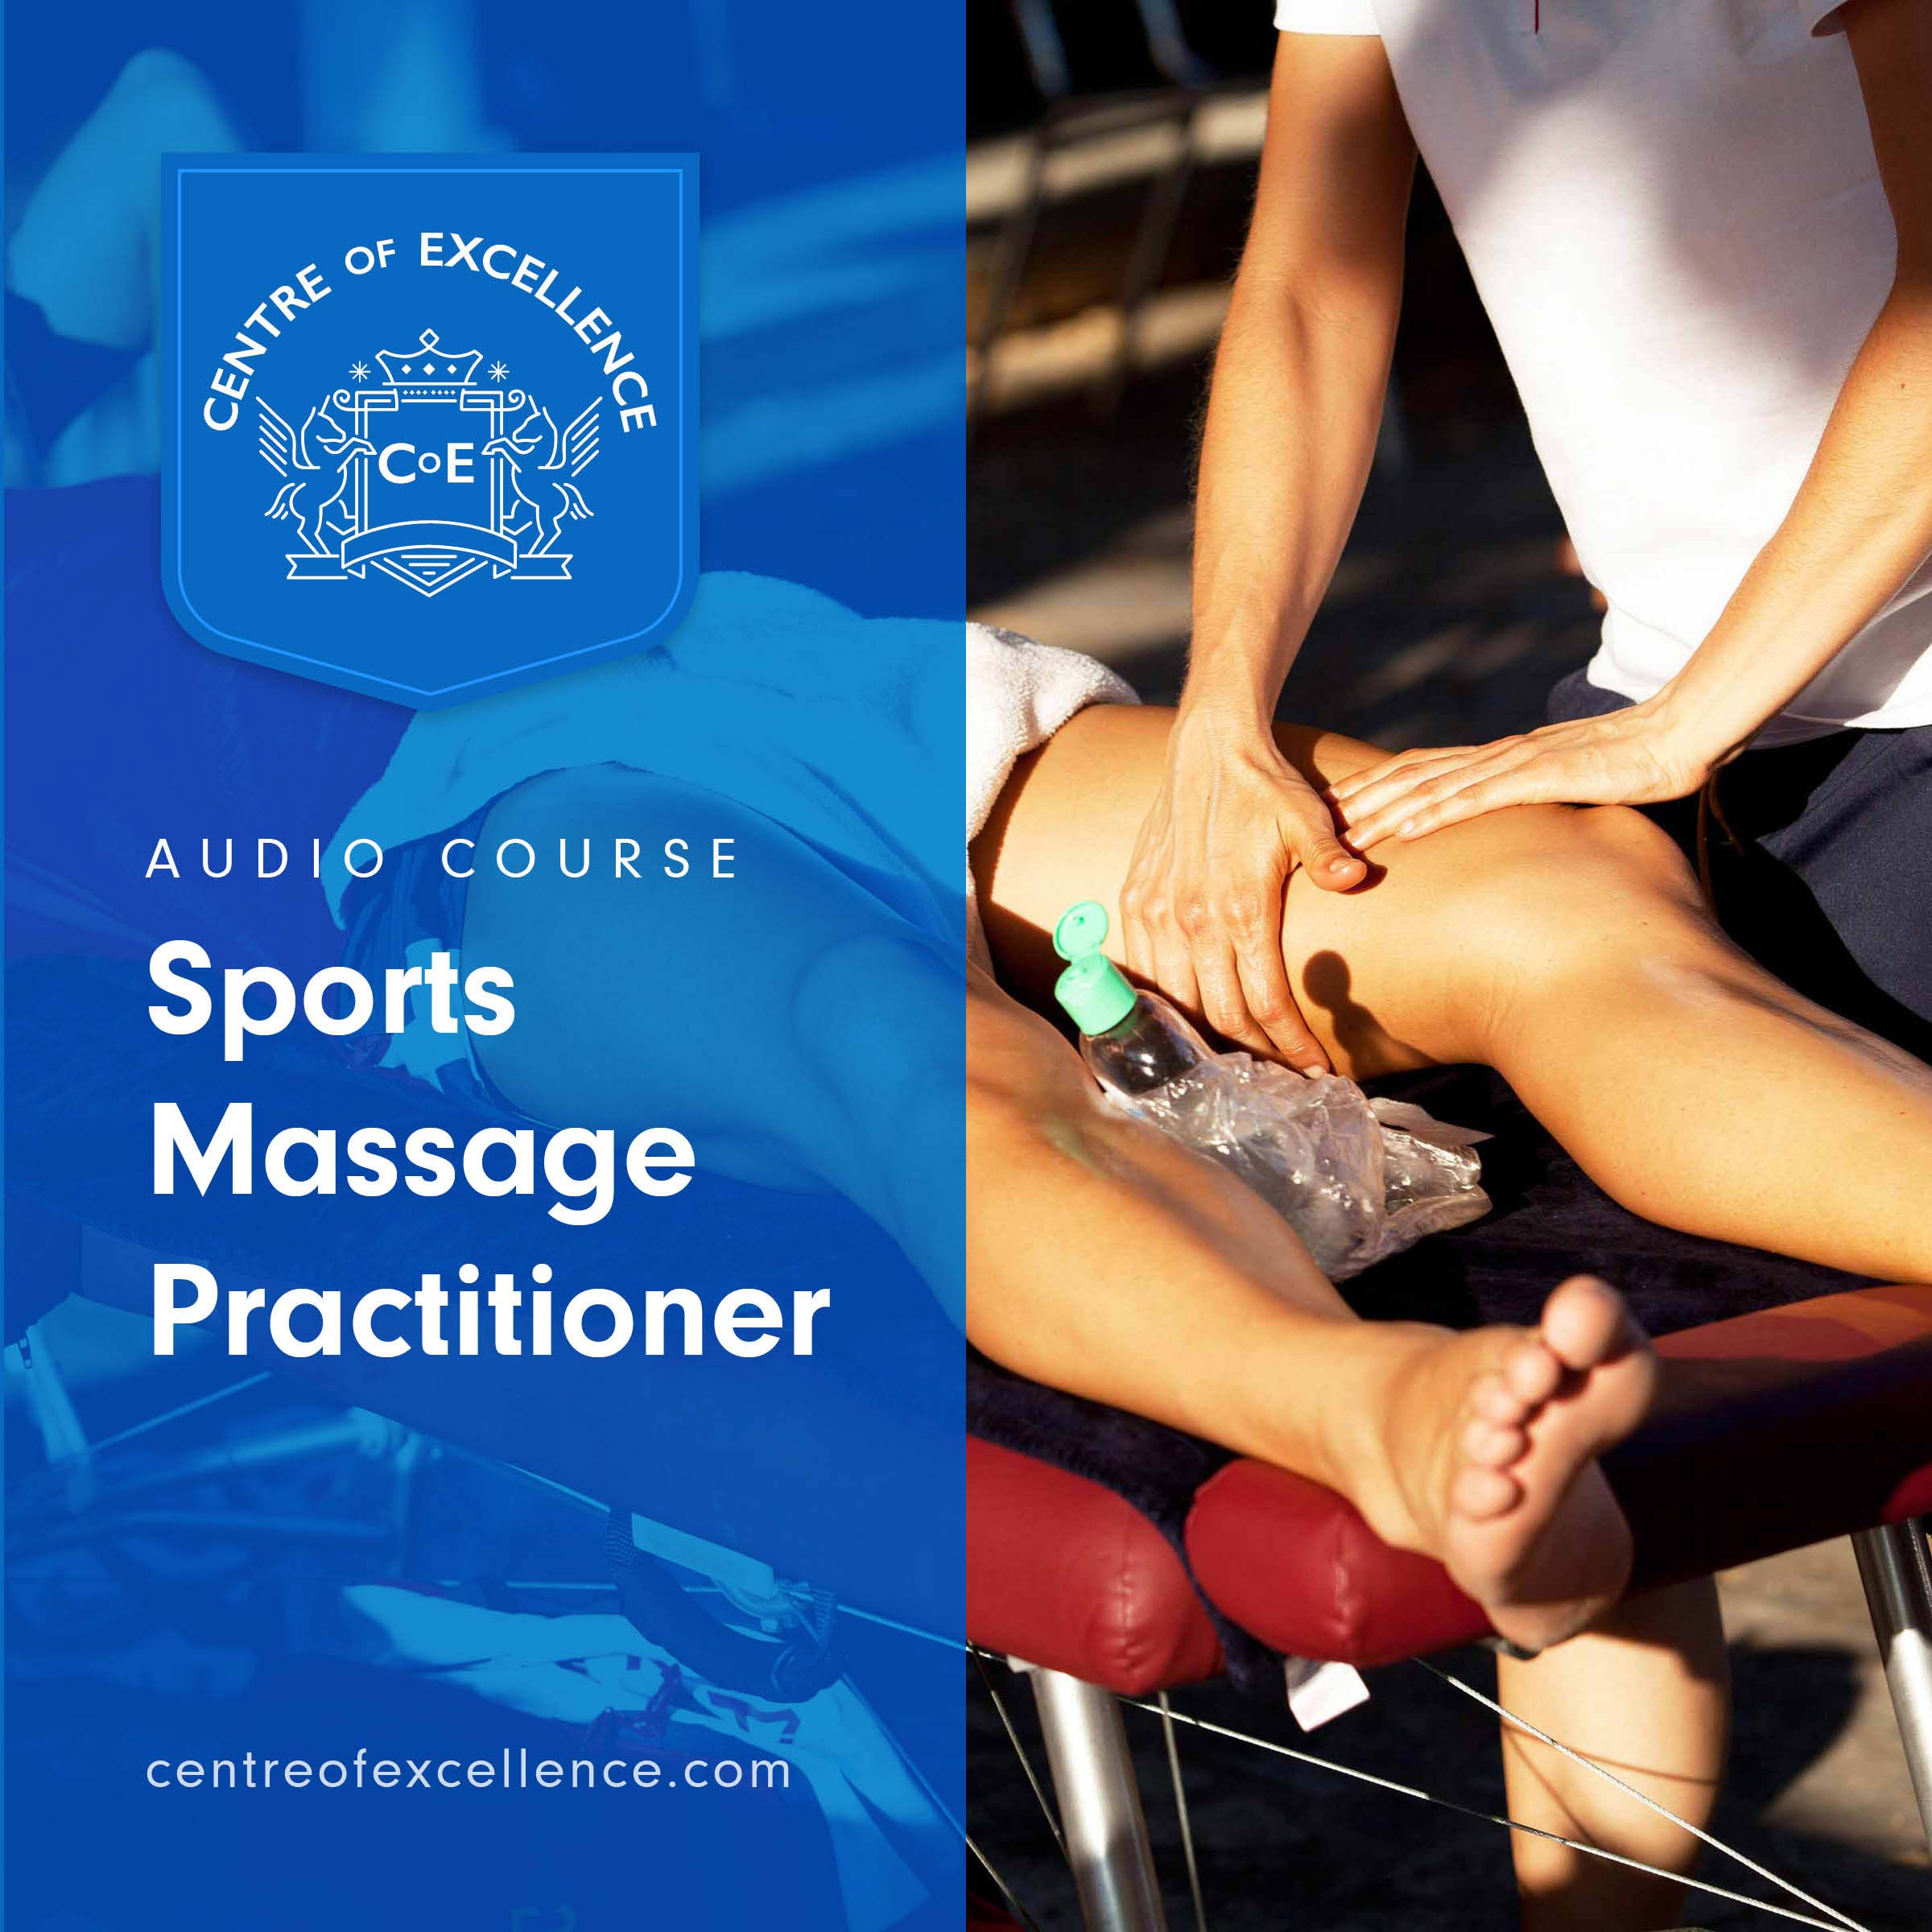 Sports Massage Practitioner Audio Course